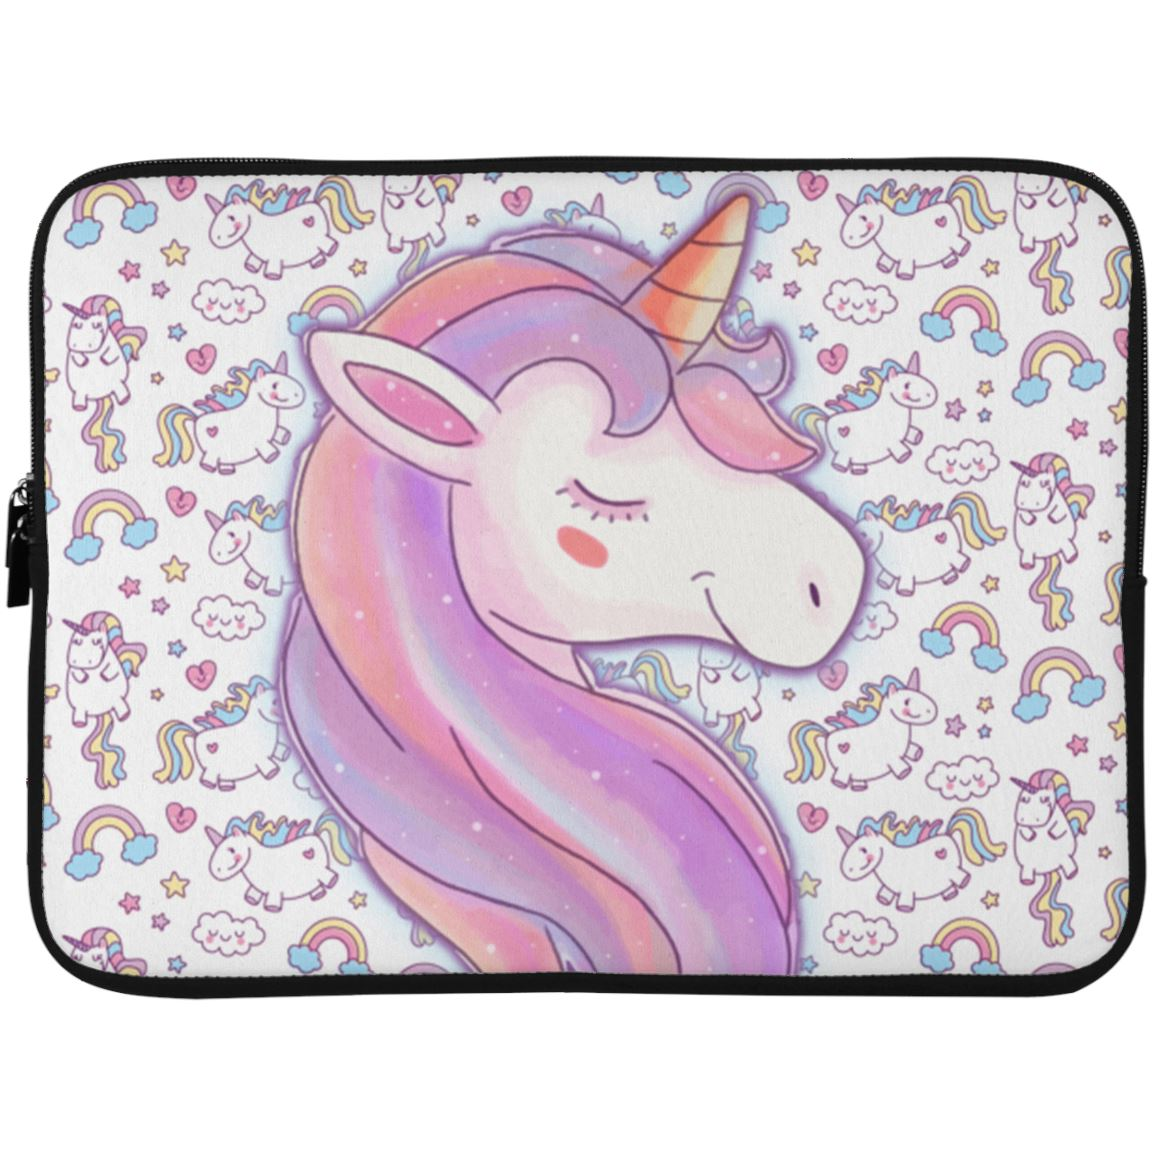 Unicorn Love Laptop Sleeve Apparel Laptop Sleeve - 15 Inch White One Size